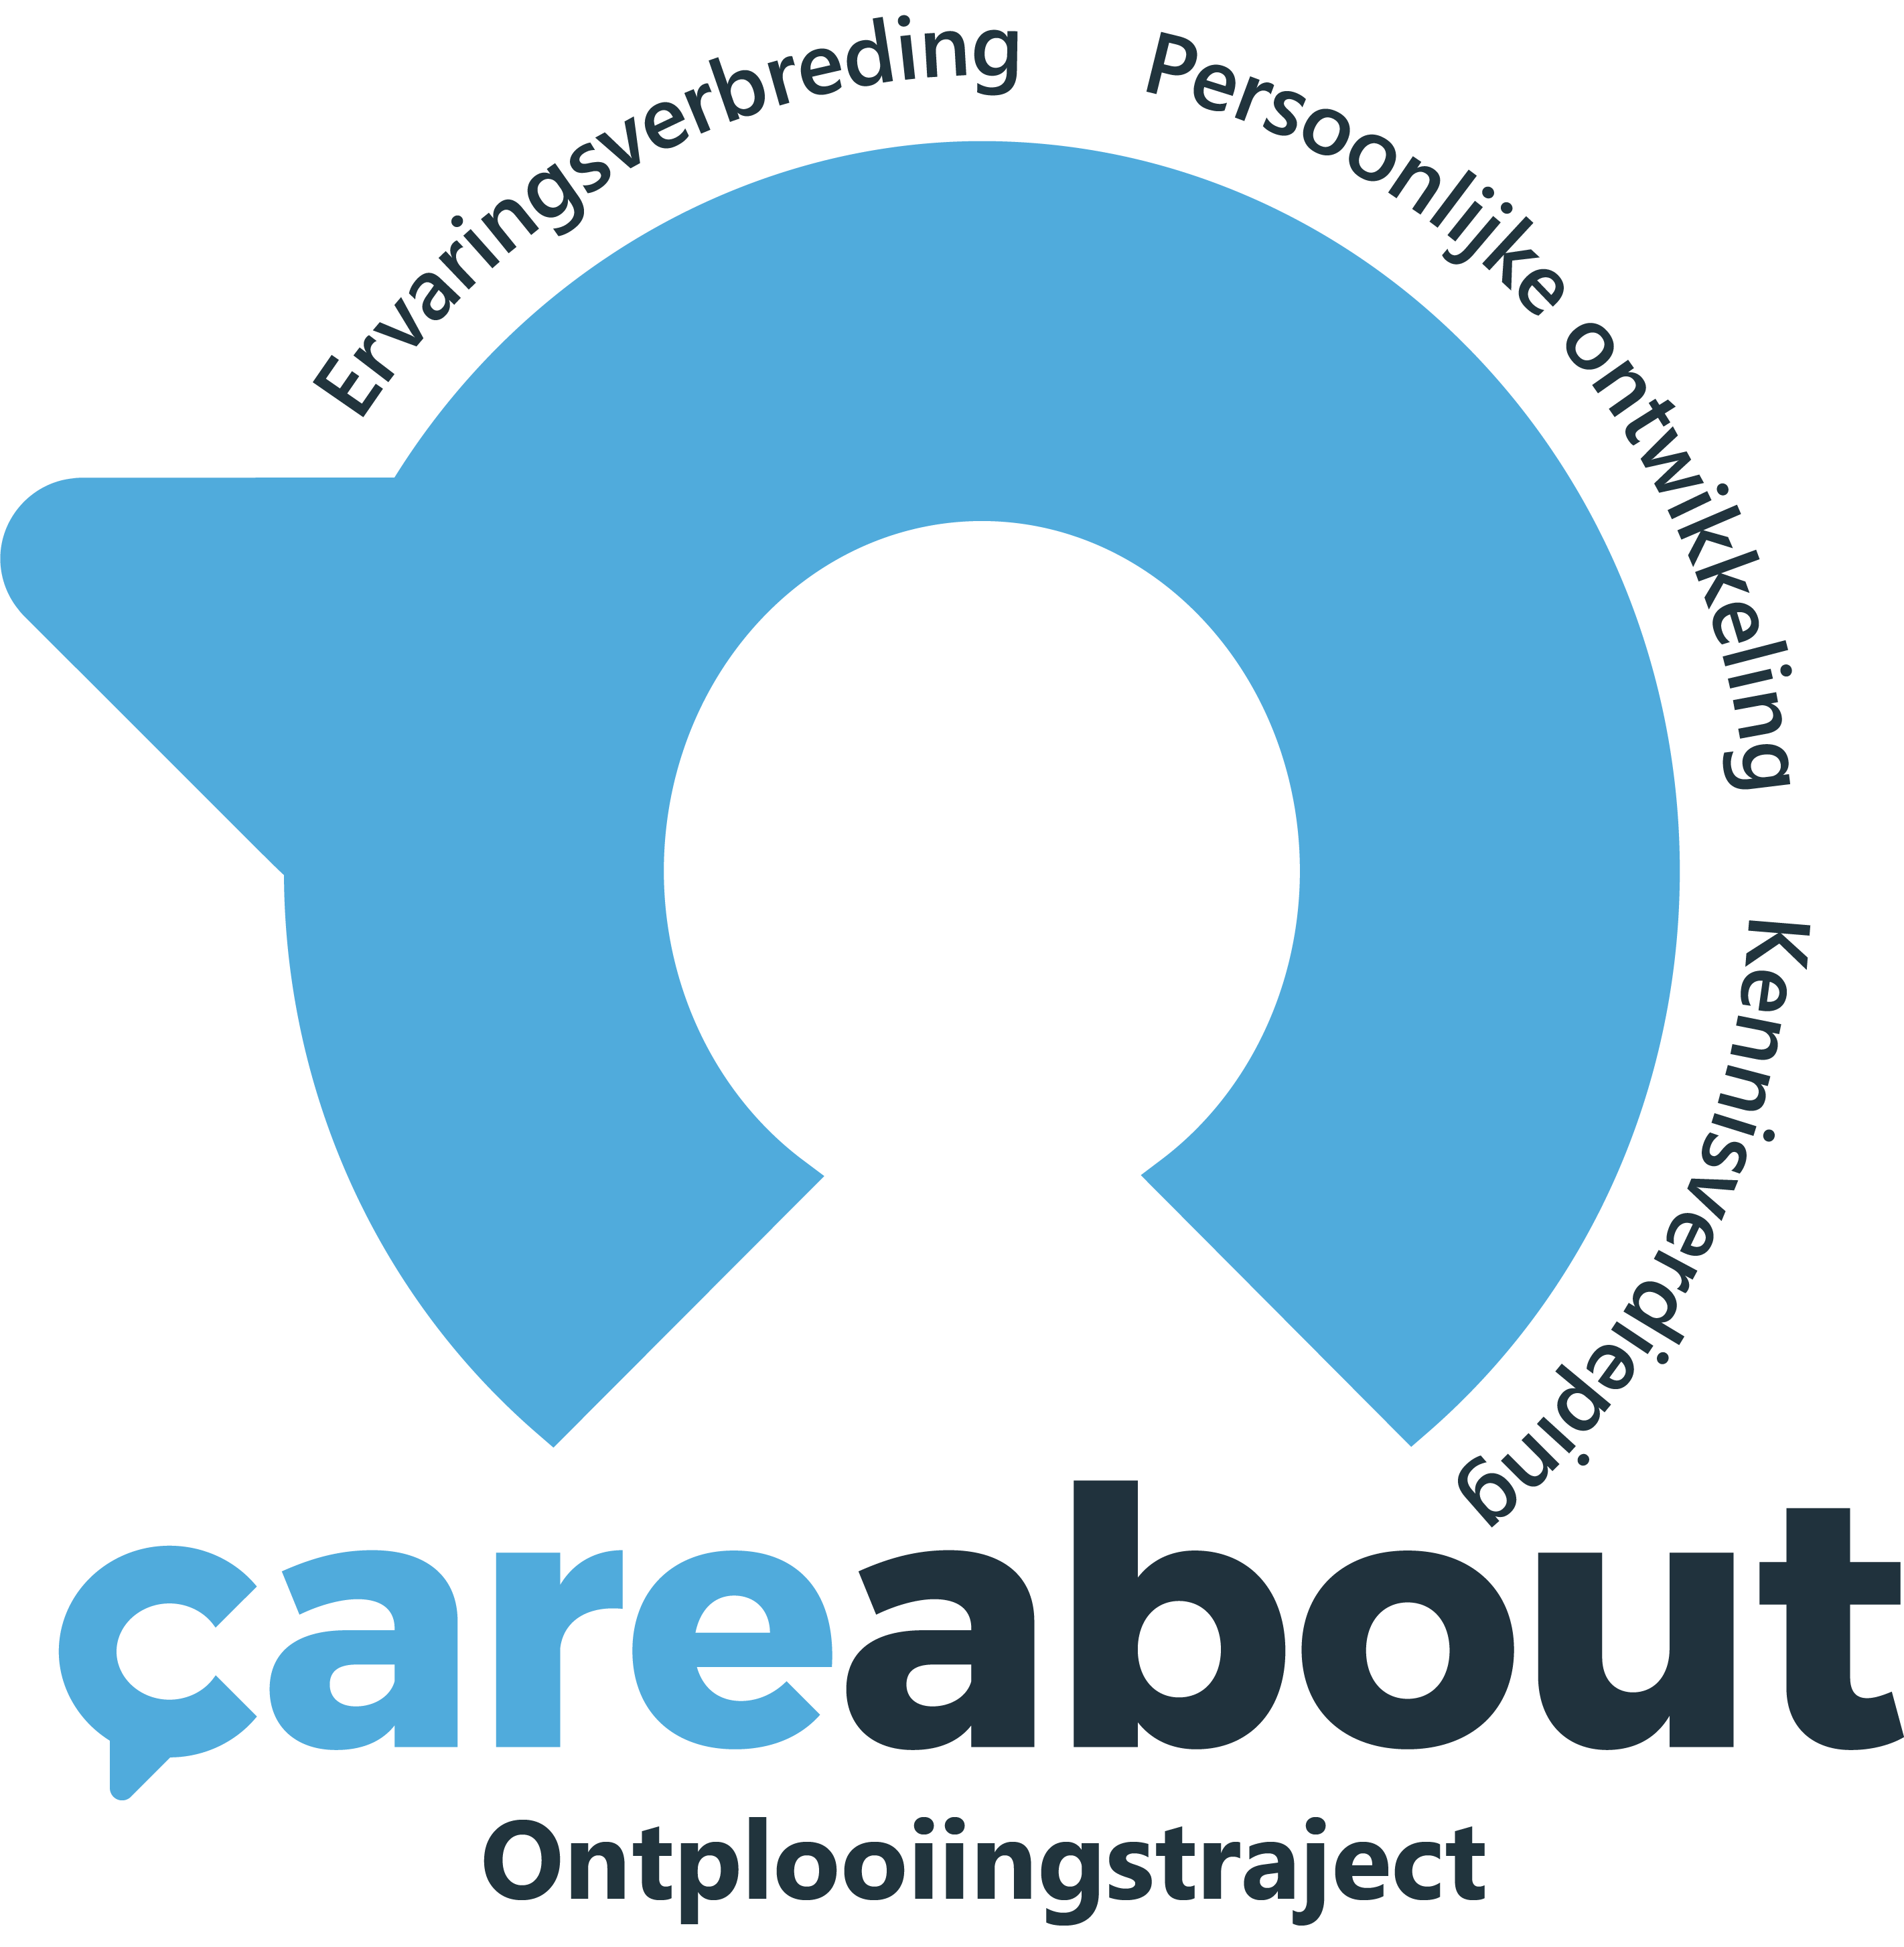 CareAbout_Logo_Ontplooiingstraject (1)